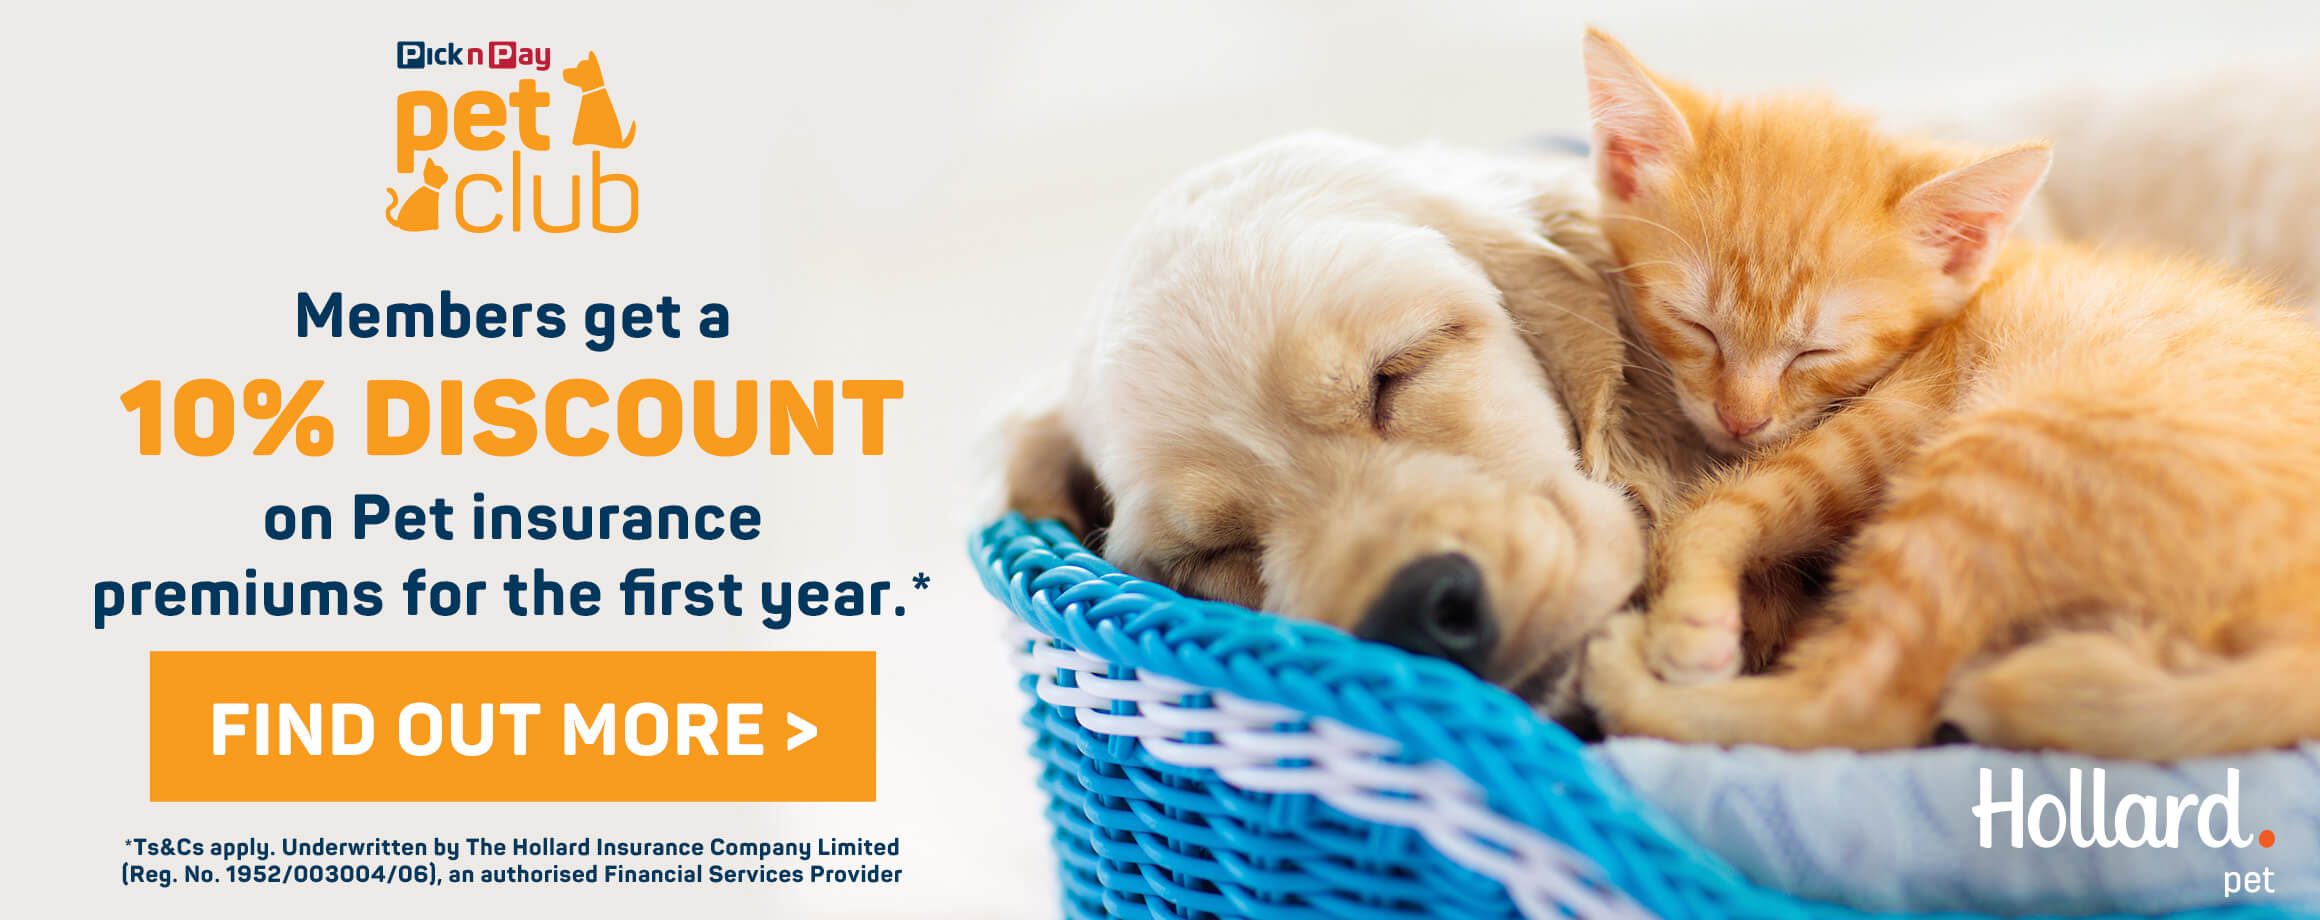 Pet Club - Members get a 10% discount on Pet insurance premiums for the first year